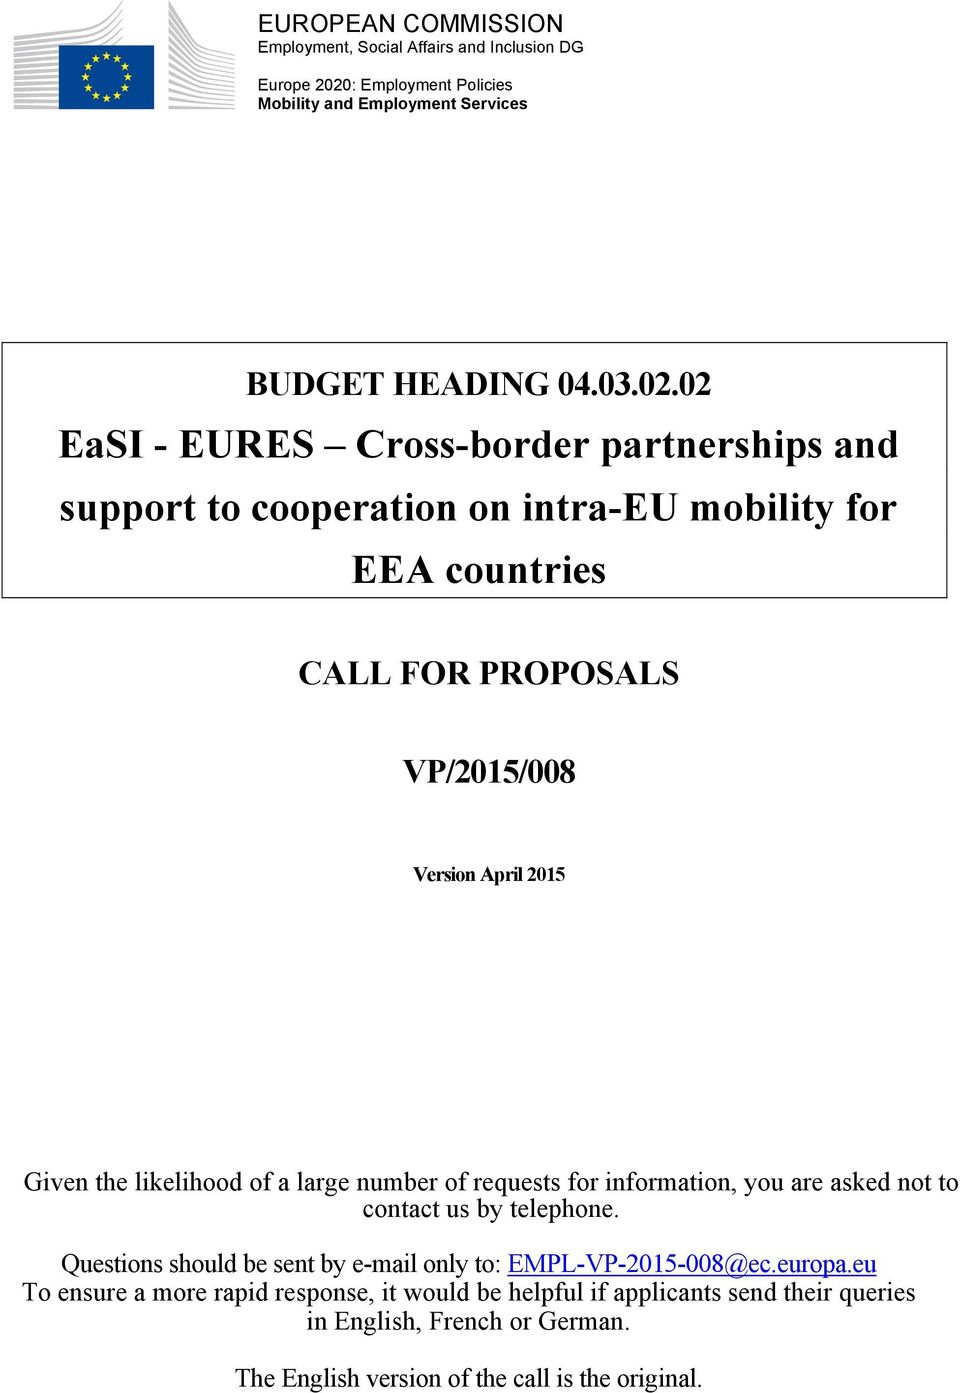 02 EaSI - EURES Cross-border partnerships and support to cooperation on intra-eu mobility for EEA countries CALL FOR PROPOSALS VP/2015/008 Version April 2015 Given